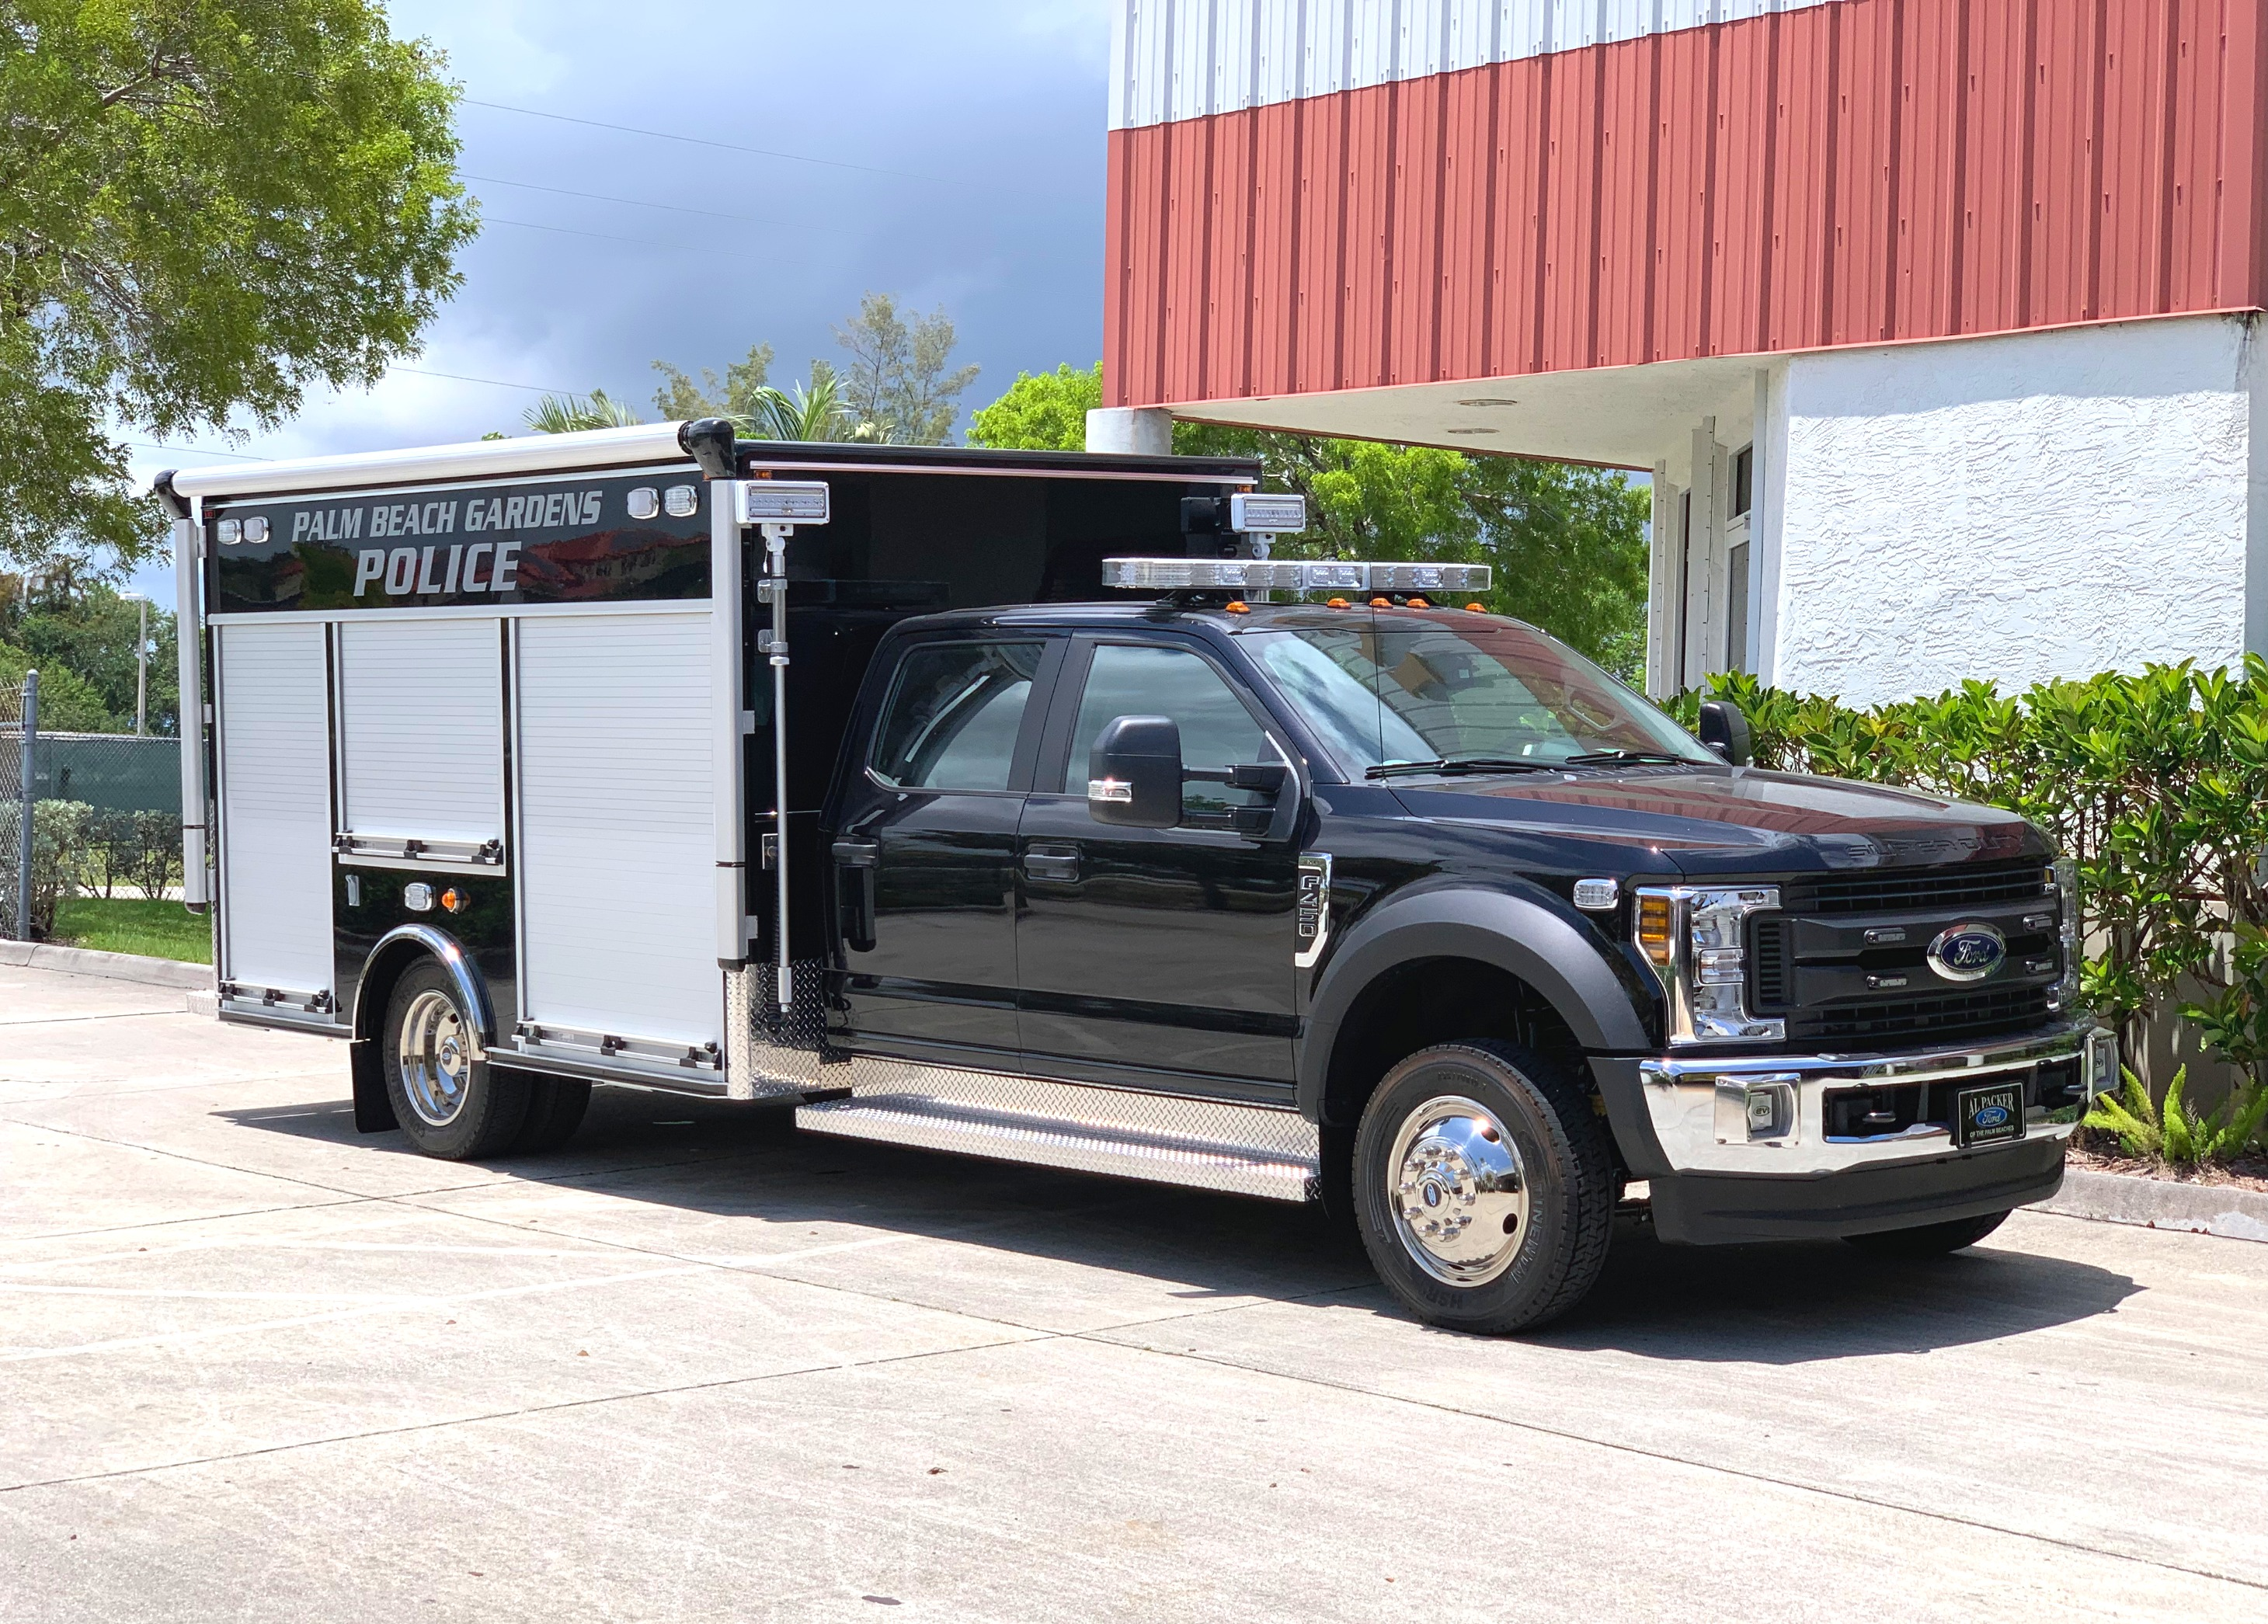 evi 12 ft police swat support unit